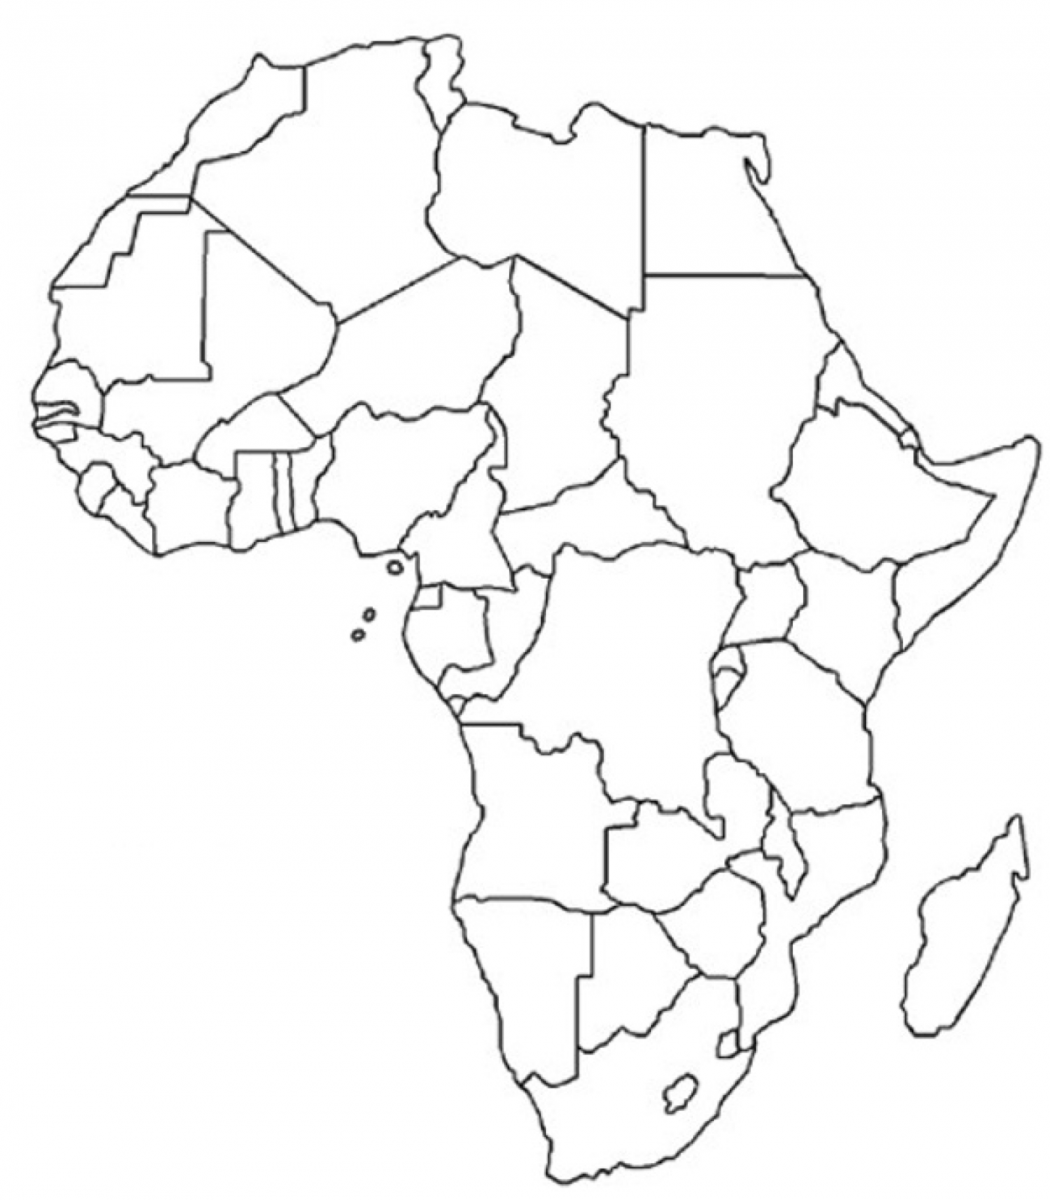 Africa Map Without Labels afr blnk.png (PNG Image, 1050 × 1200 pixels) | World map printable